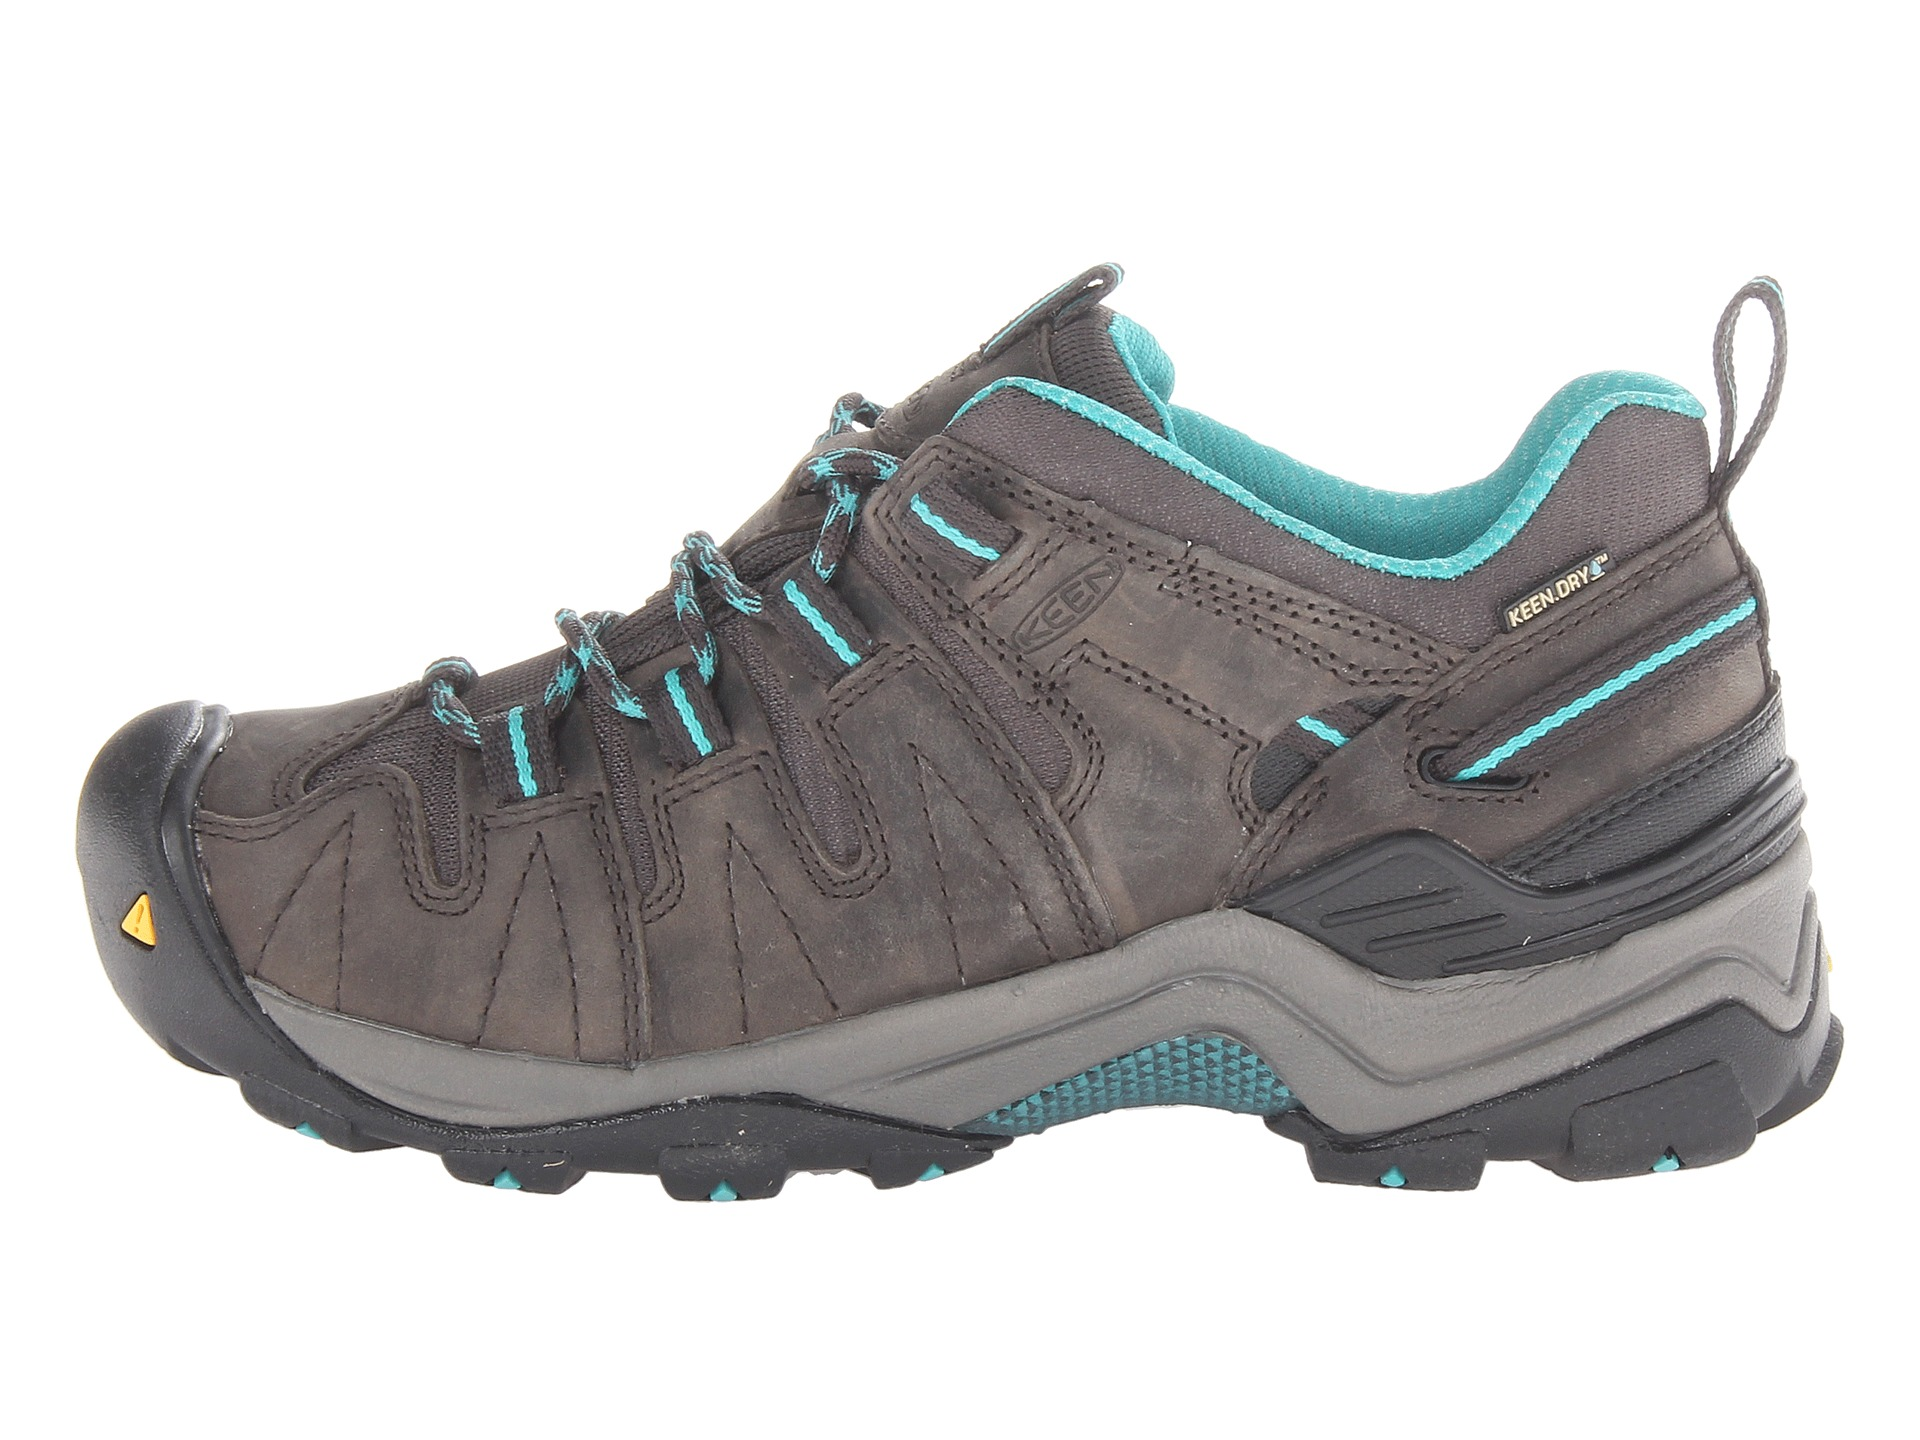 Keen Womens 'Pyrenees' Hiking Boot Shoe | Everyday Gym Shoes For Women